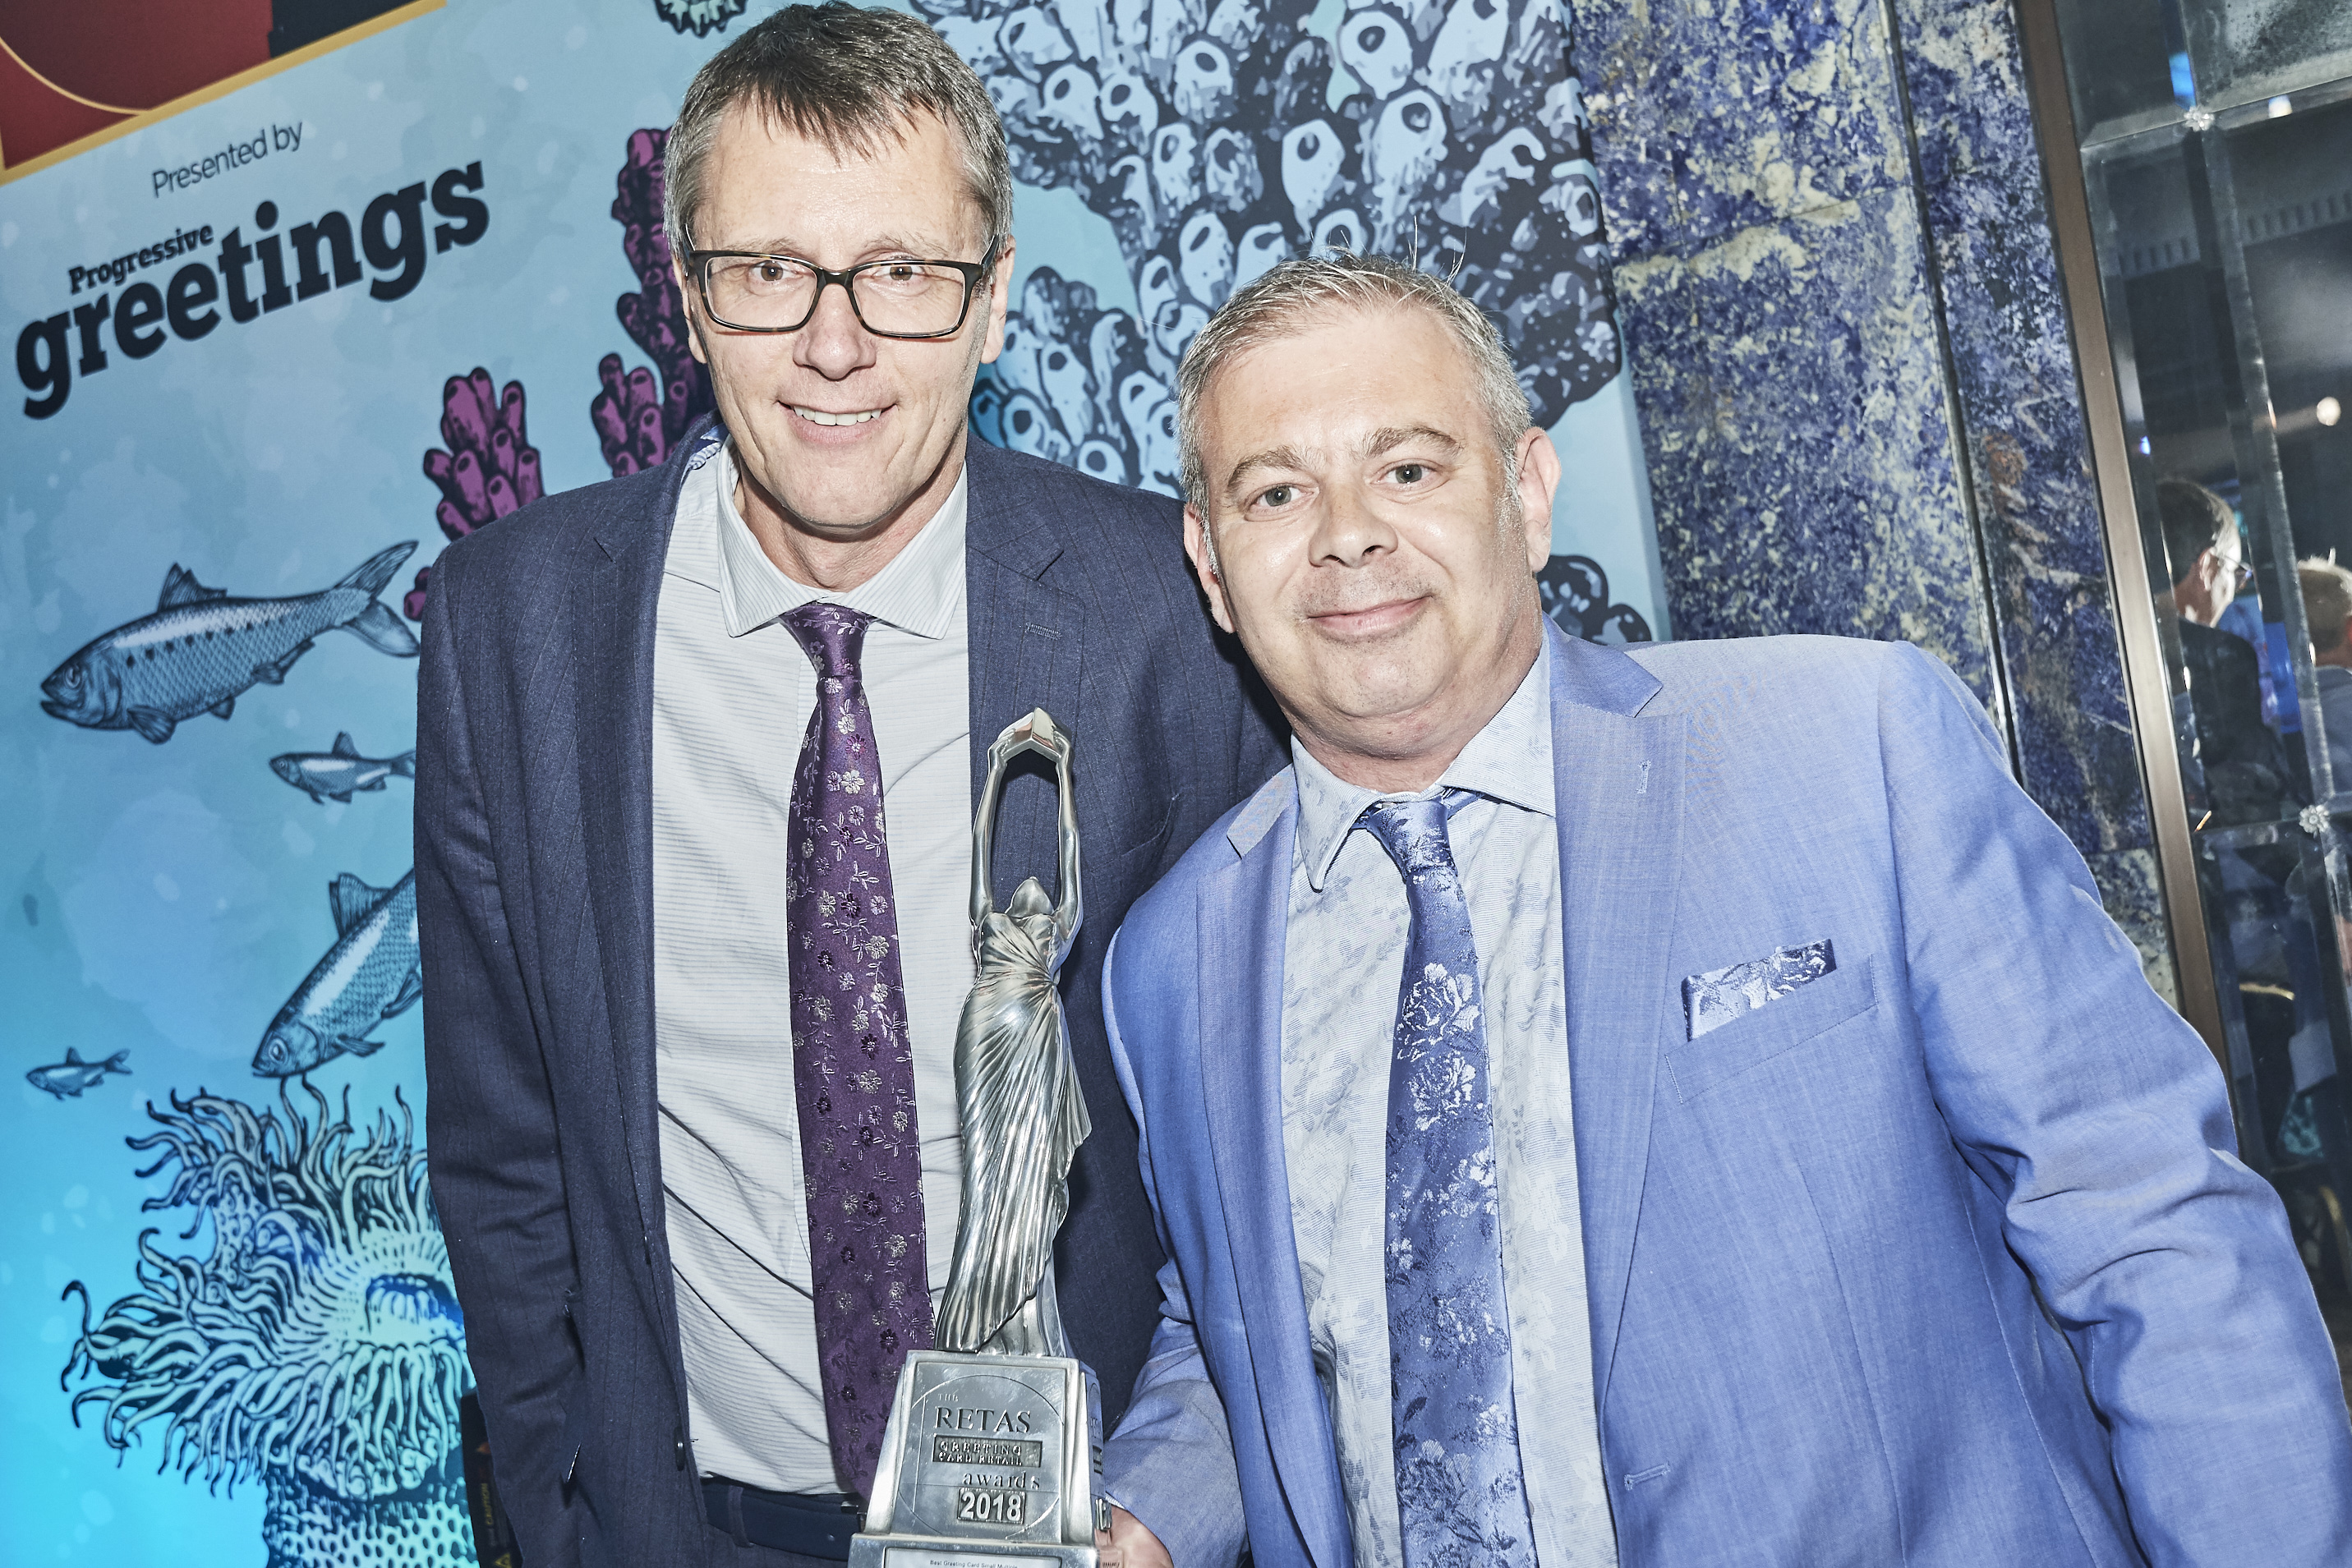 Above: House of Cards' Miles Robinson (right) and Nigel Williamson with their trophy they won at The Retas 2018 in July for Best Greeting Card Small Multiple.